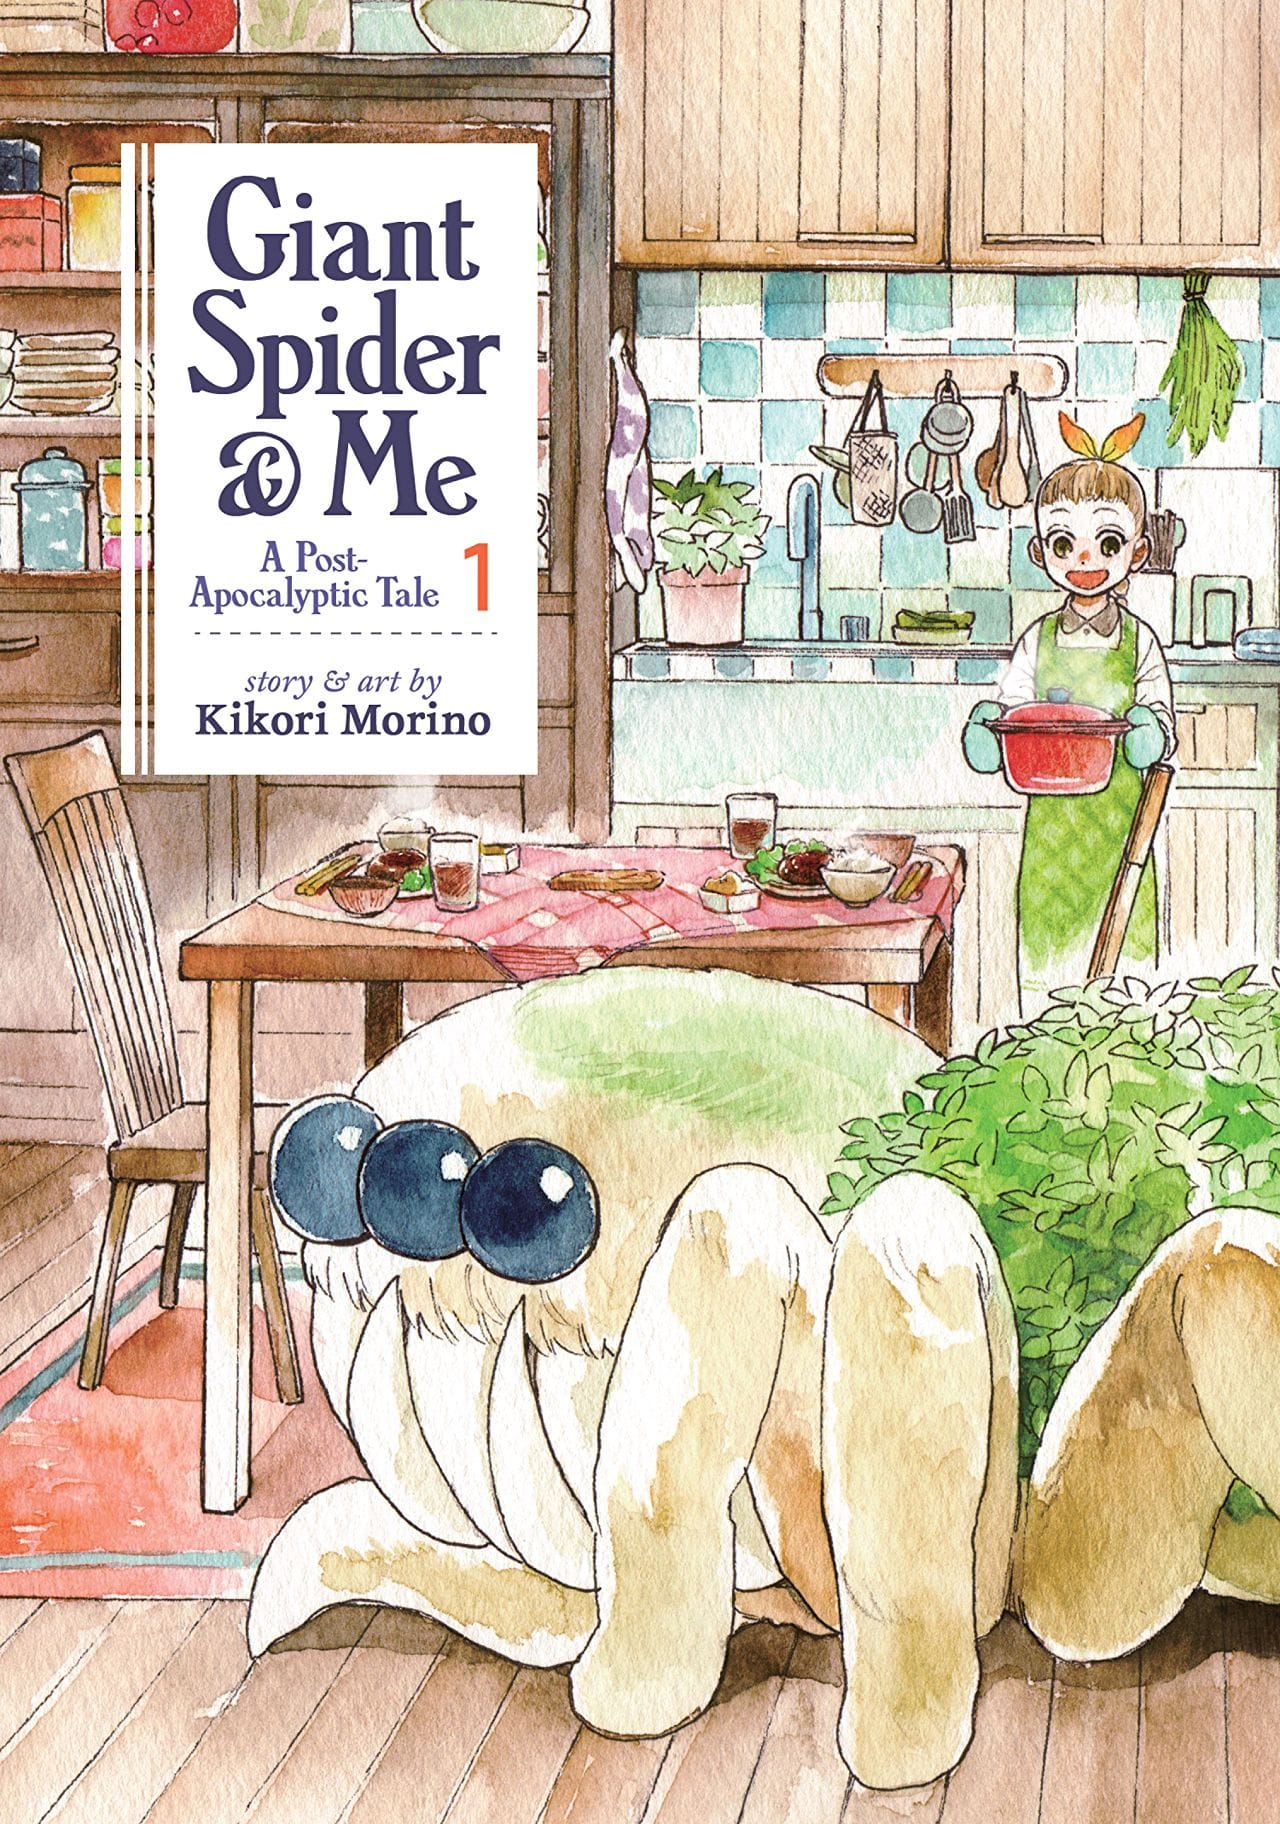 A heartwarming story about the friendship between a little girl and her gigantic mutant spider.